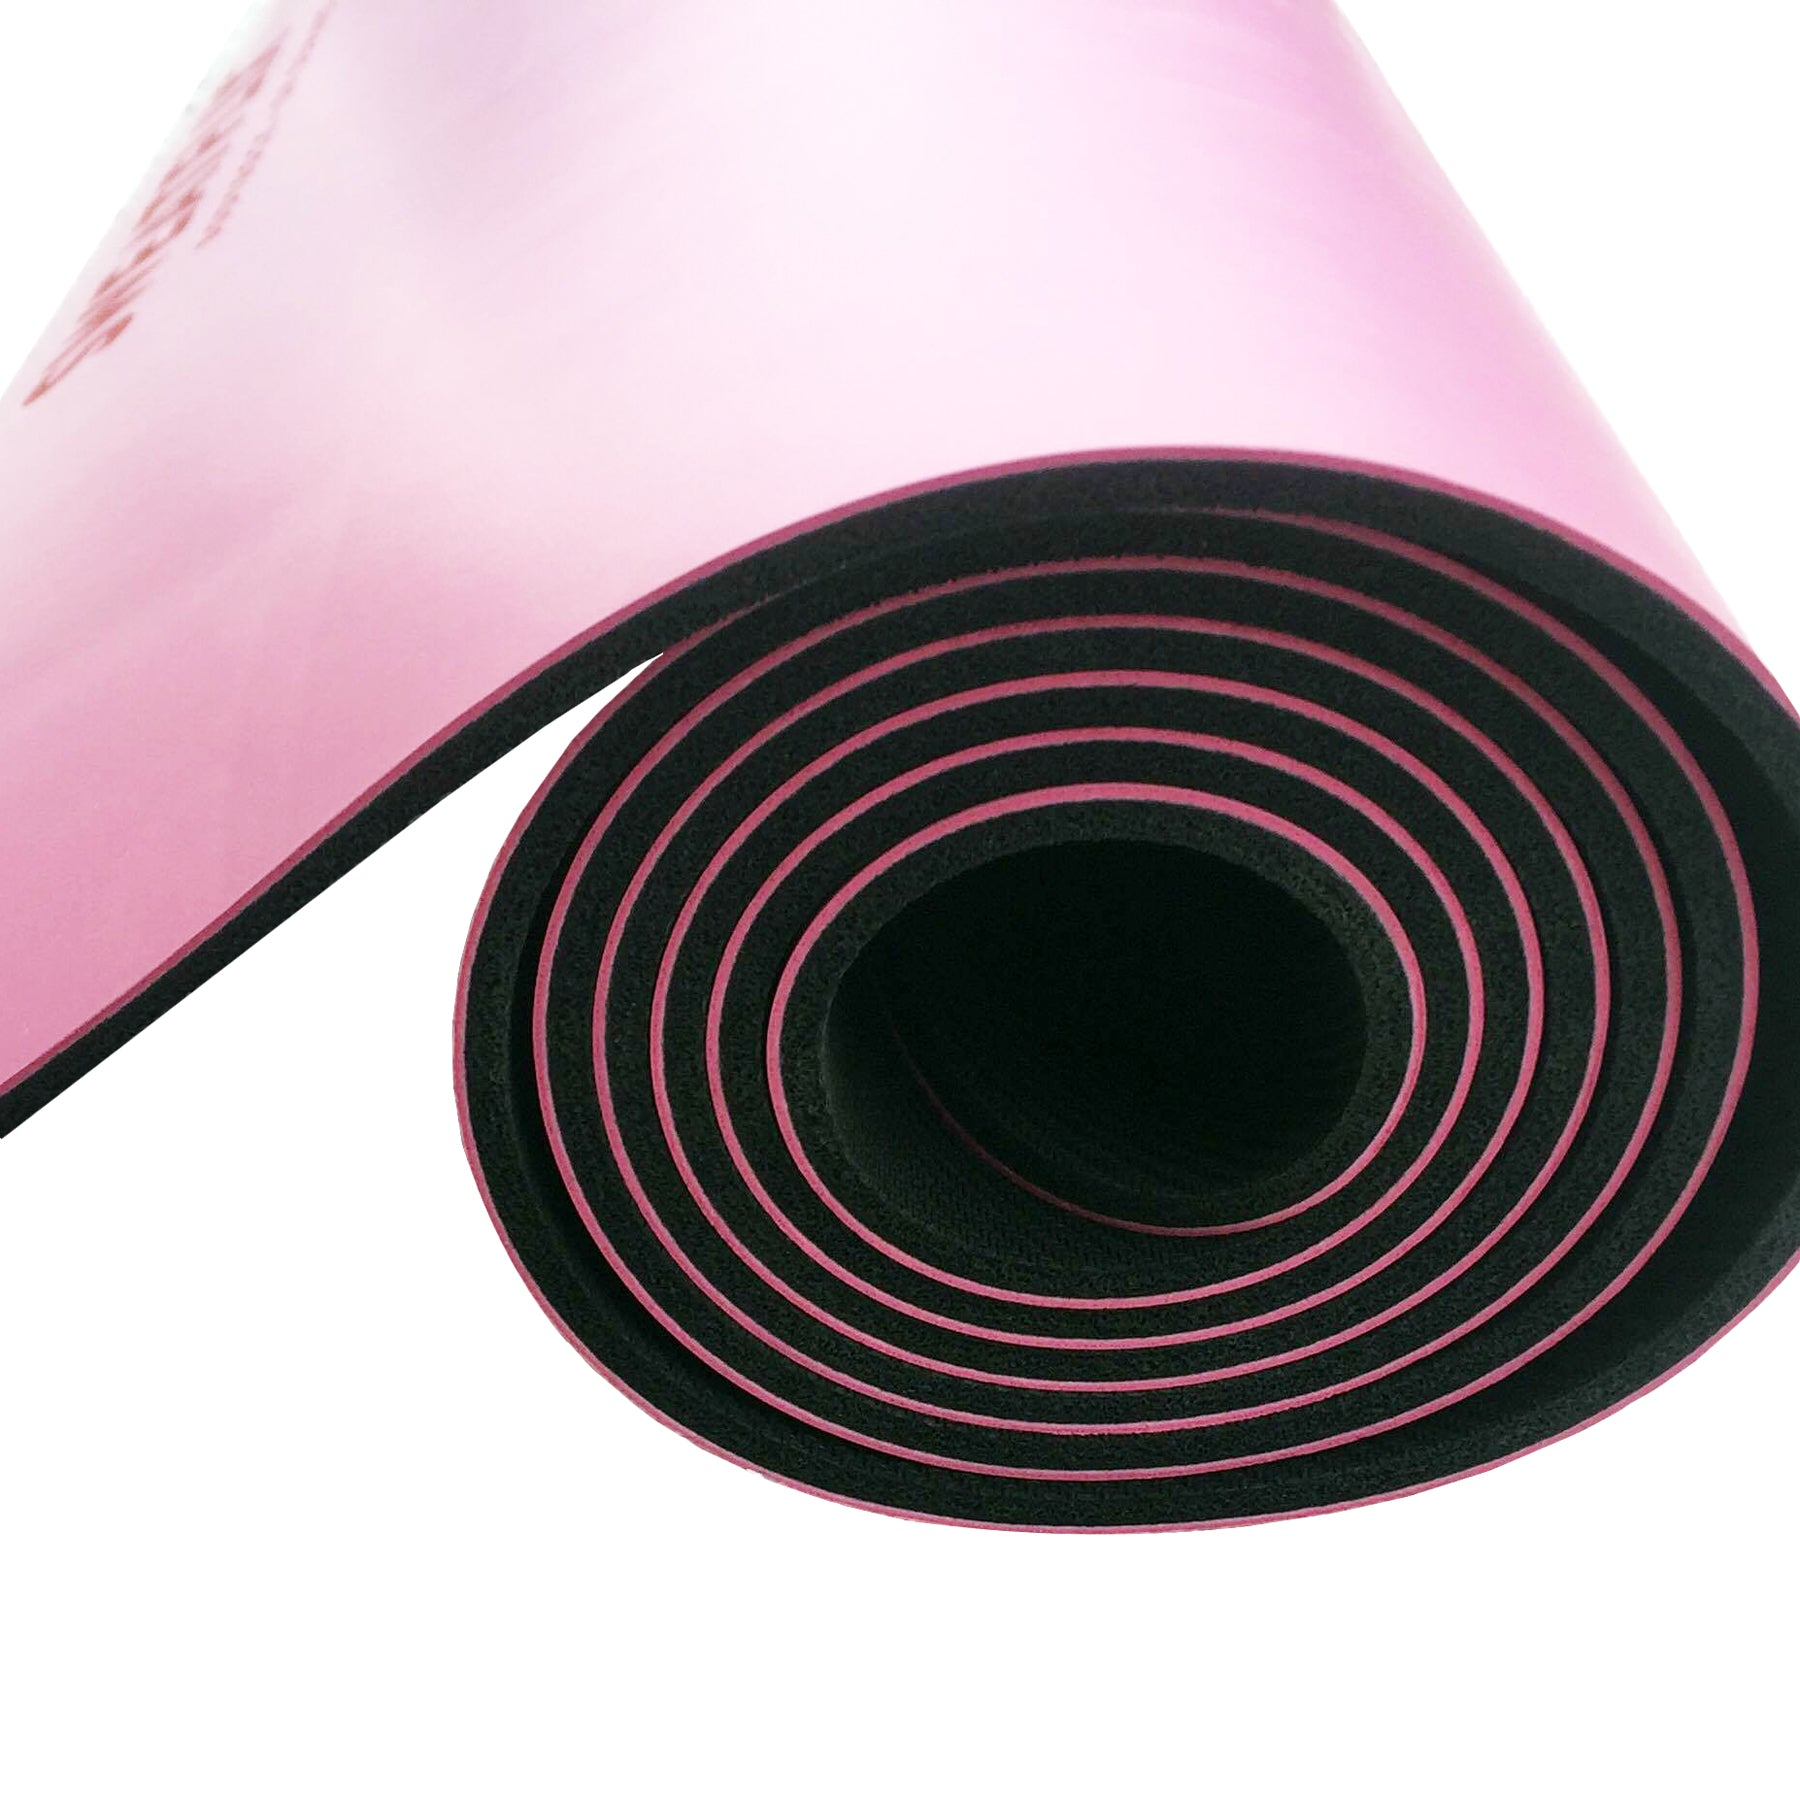 mats yoga mat rubber product thick china sheets nbr mad isnejvxoofwh extra exercise foam